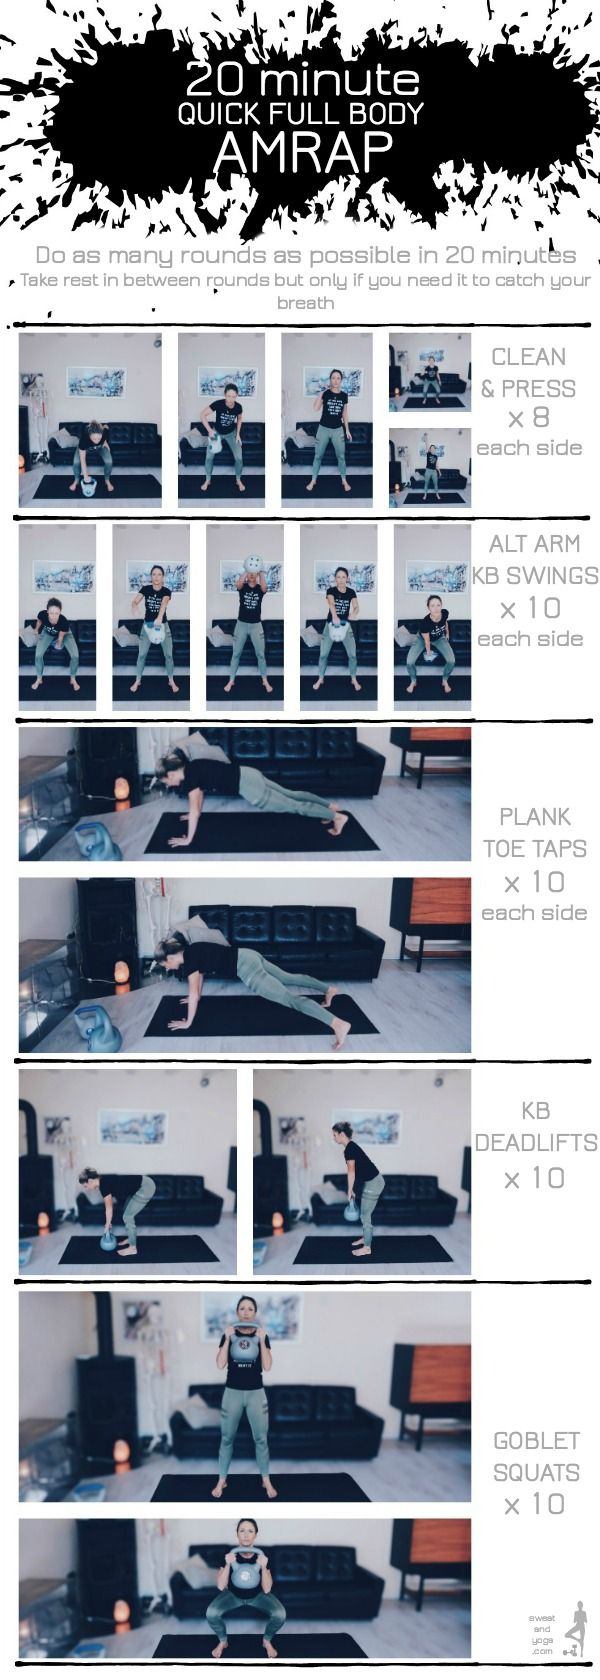 Full body 20 minute AMRAP - quick workout using kettlebells| Posted By: CustomWeightLossProgram.com